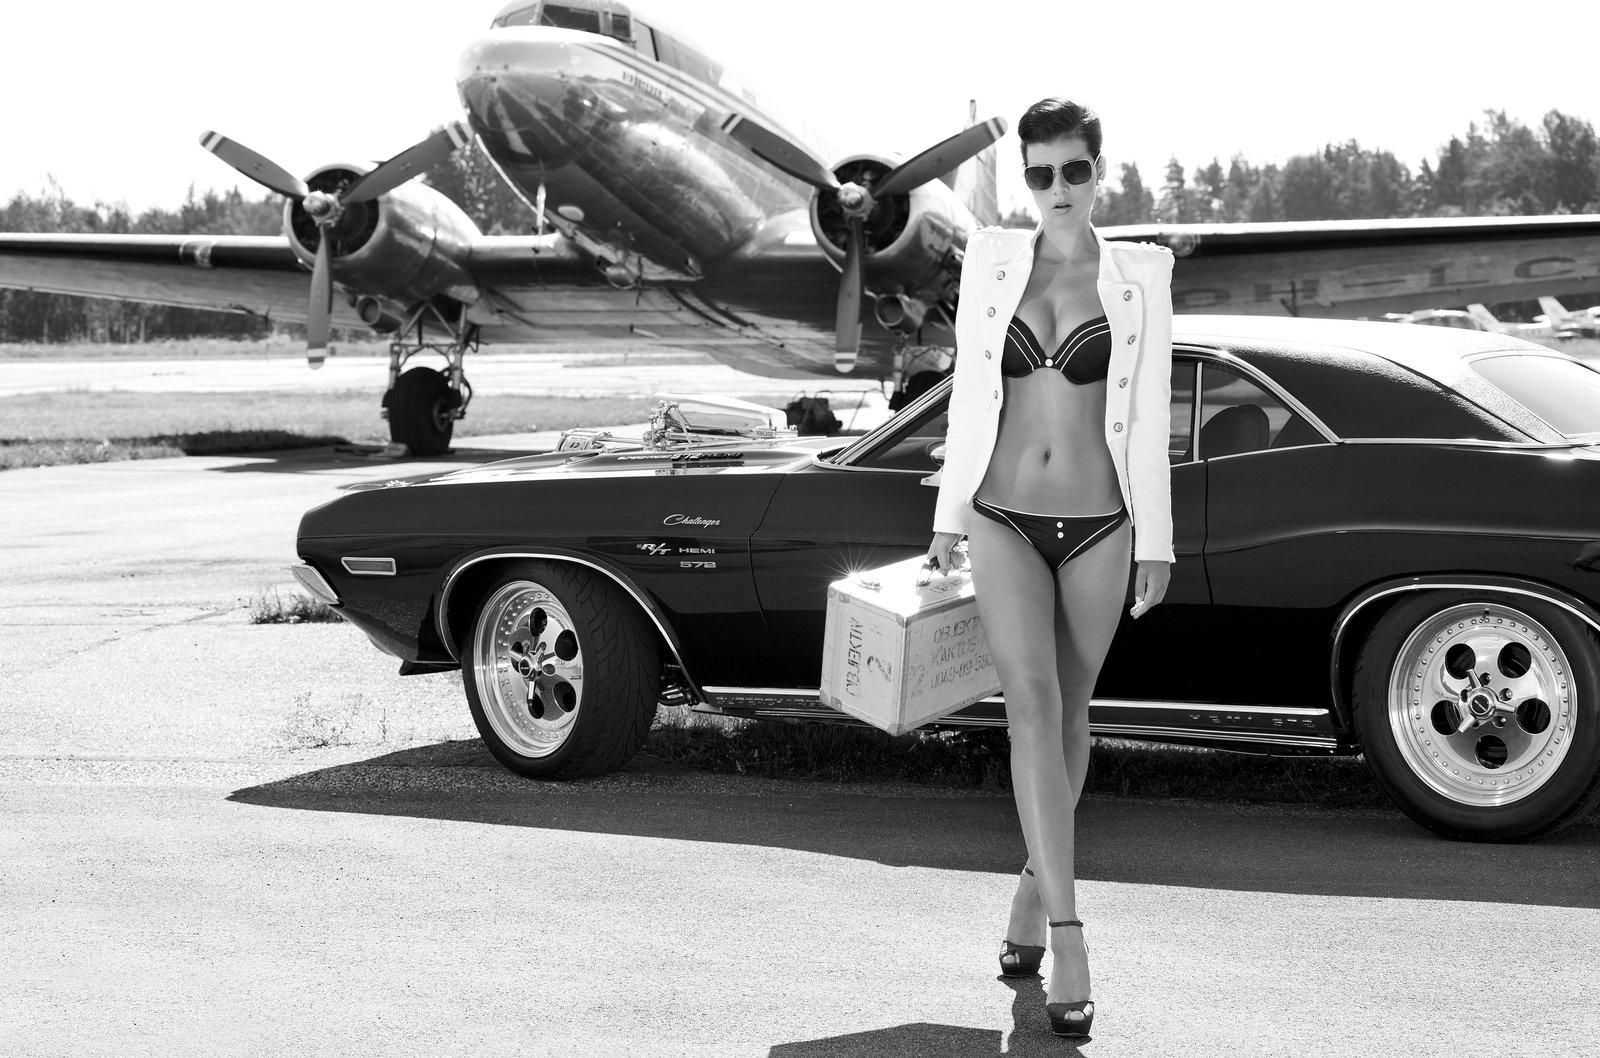 2013 Calendrier Miss Tuning